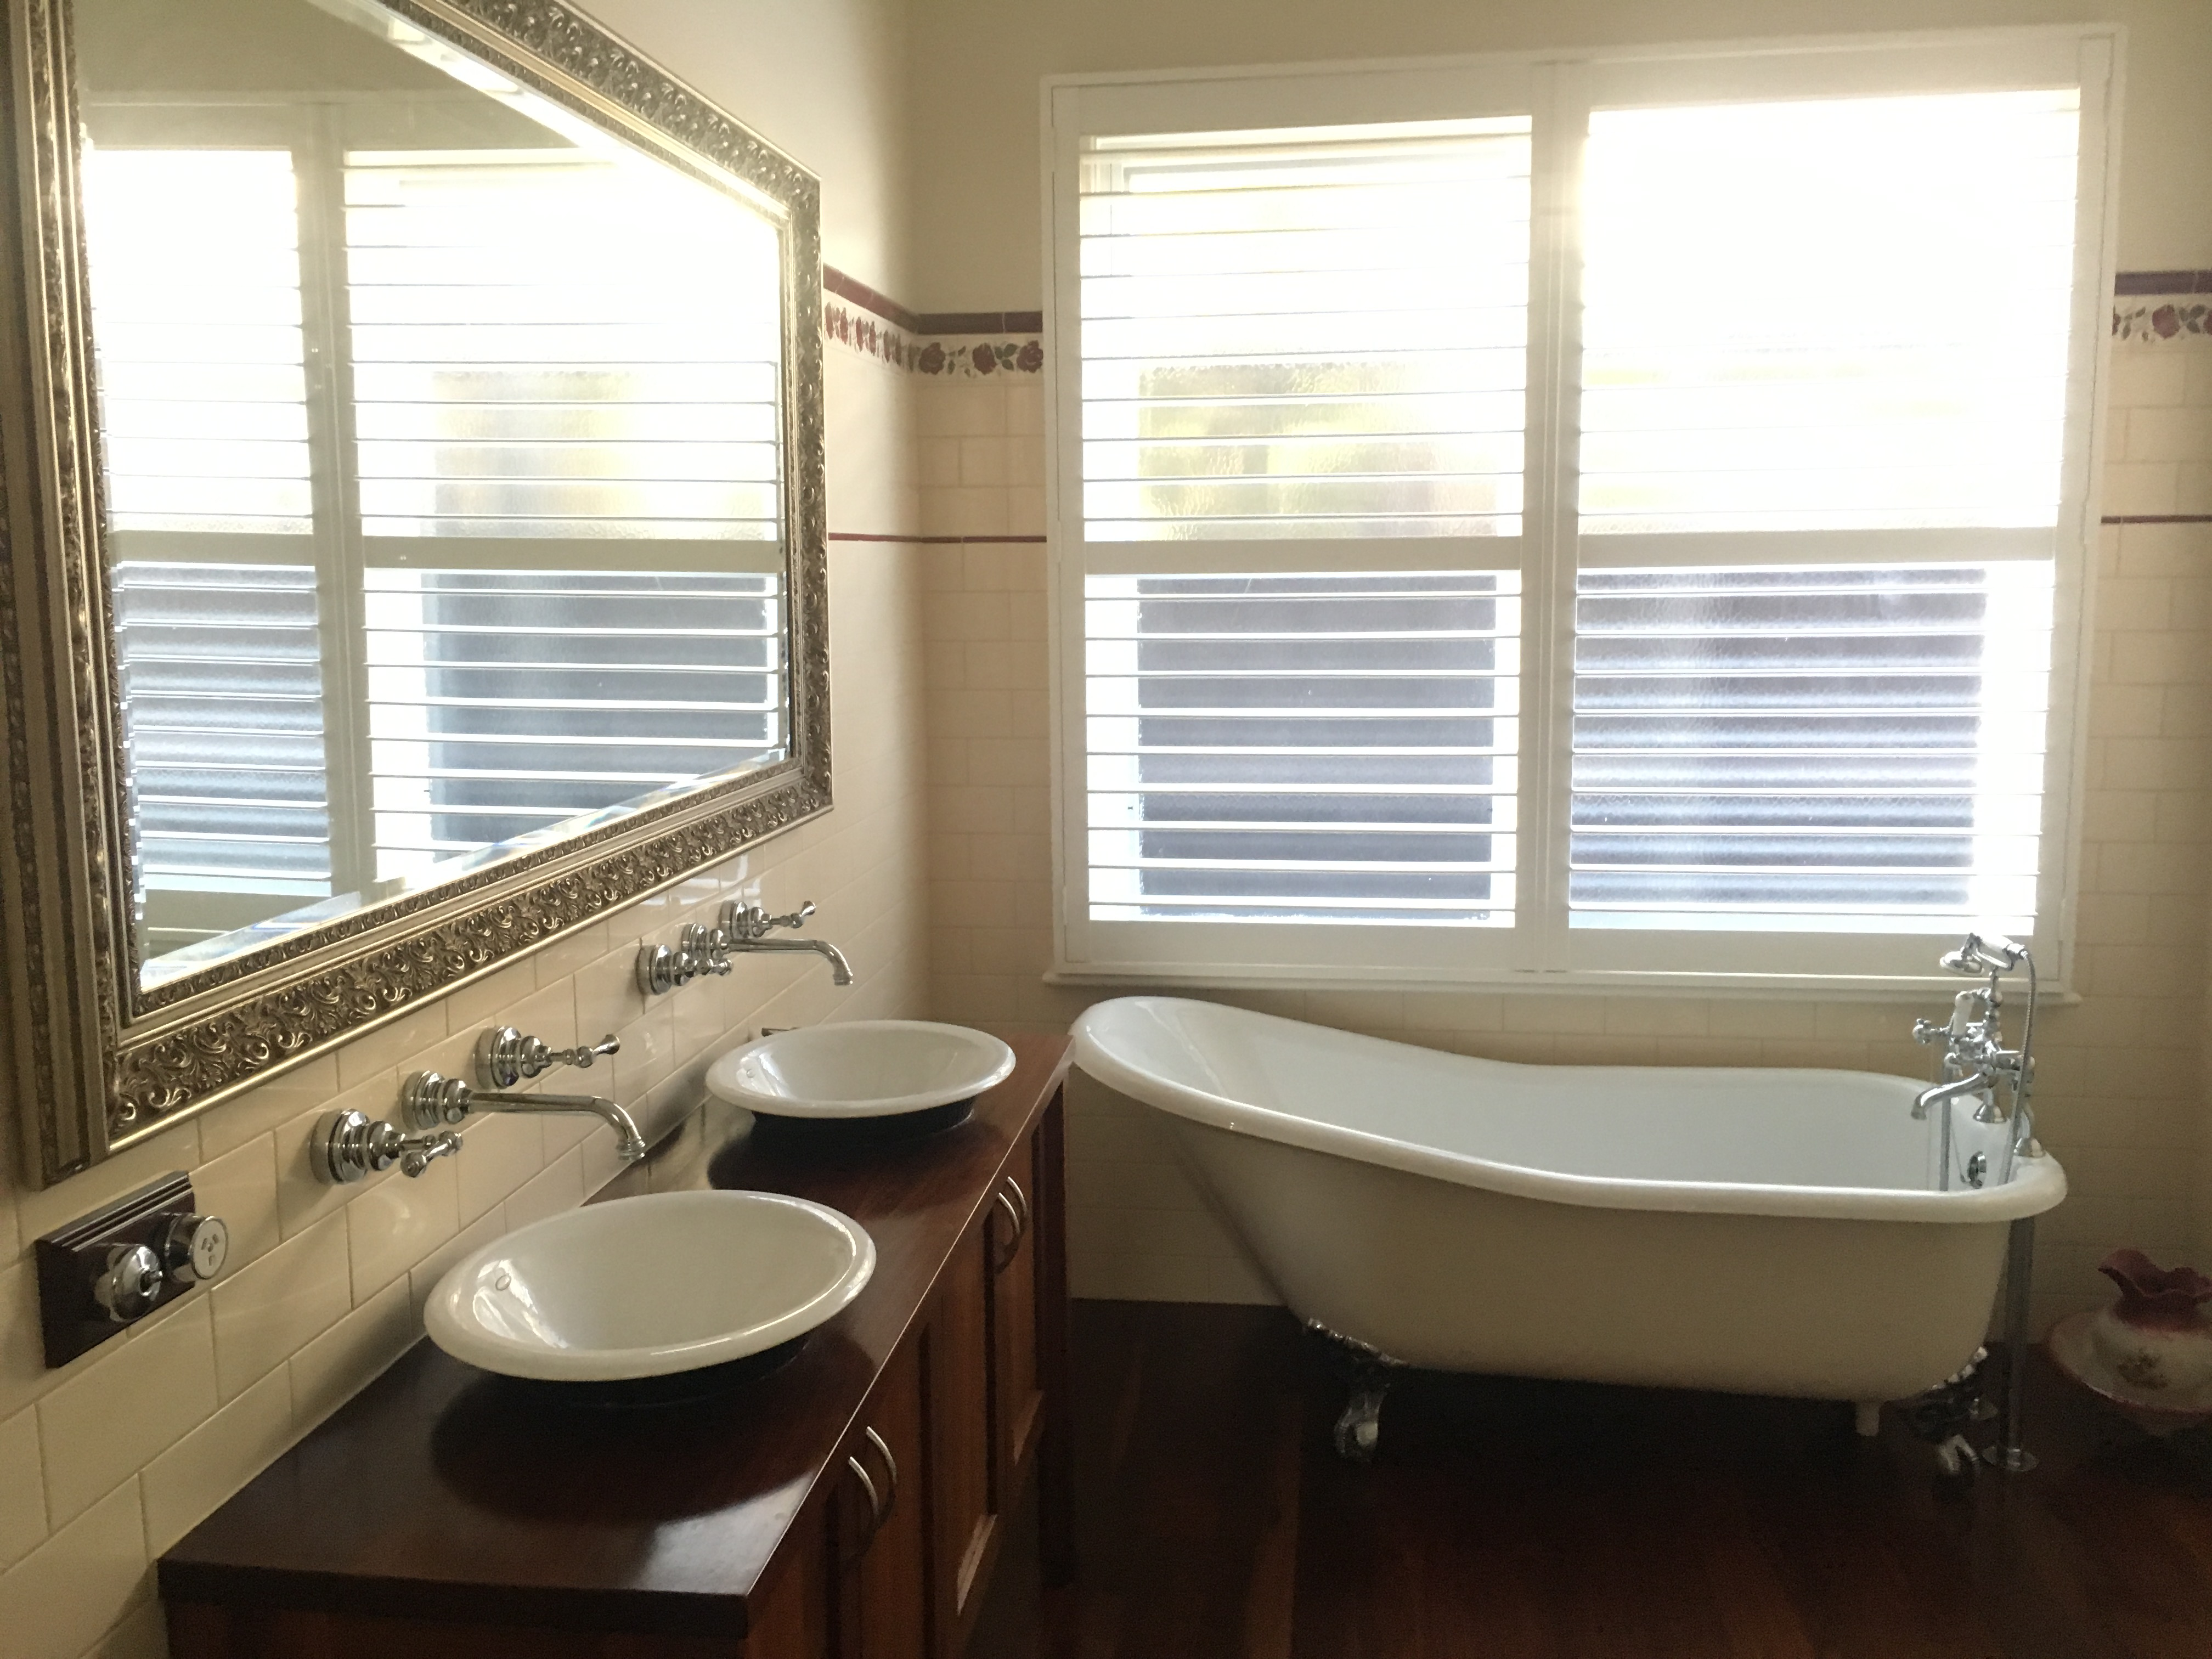 ixl tastic wiring diagram hps sentinel g kitchen bathroom and laundry electrician in melbourne